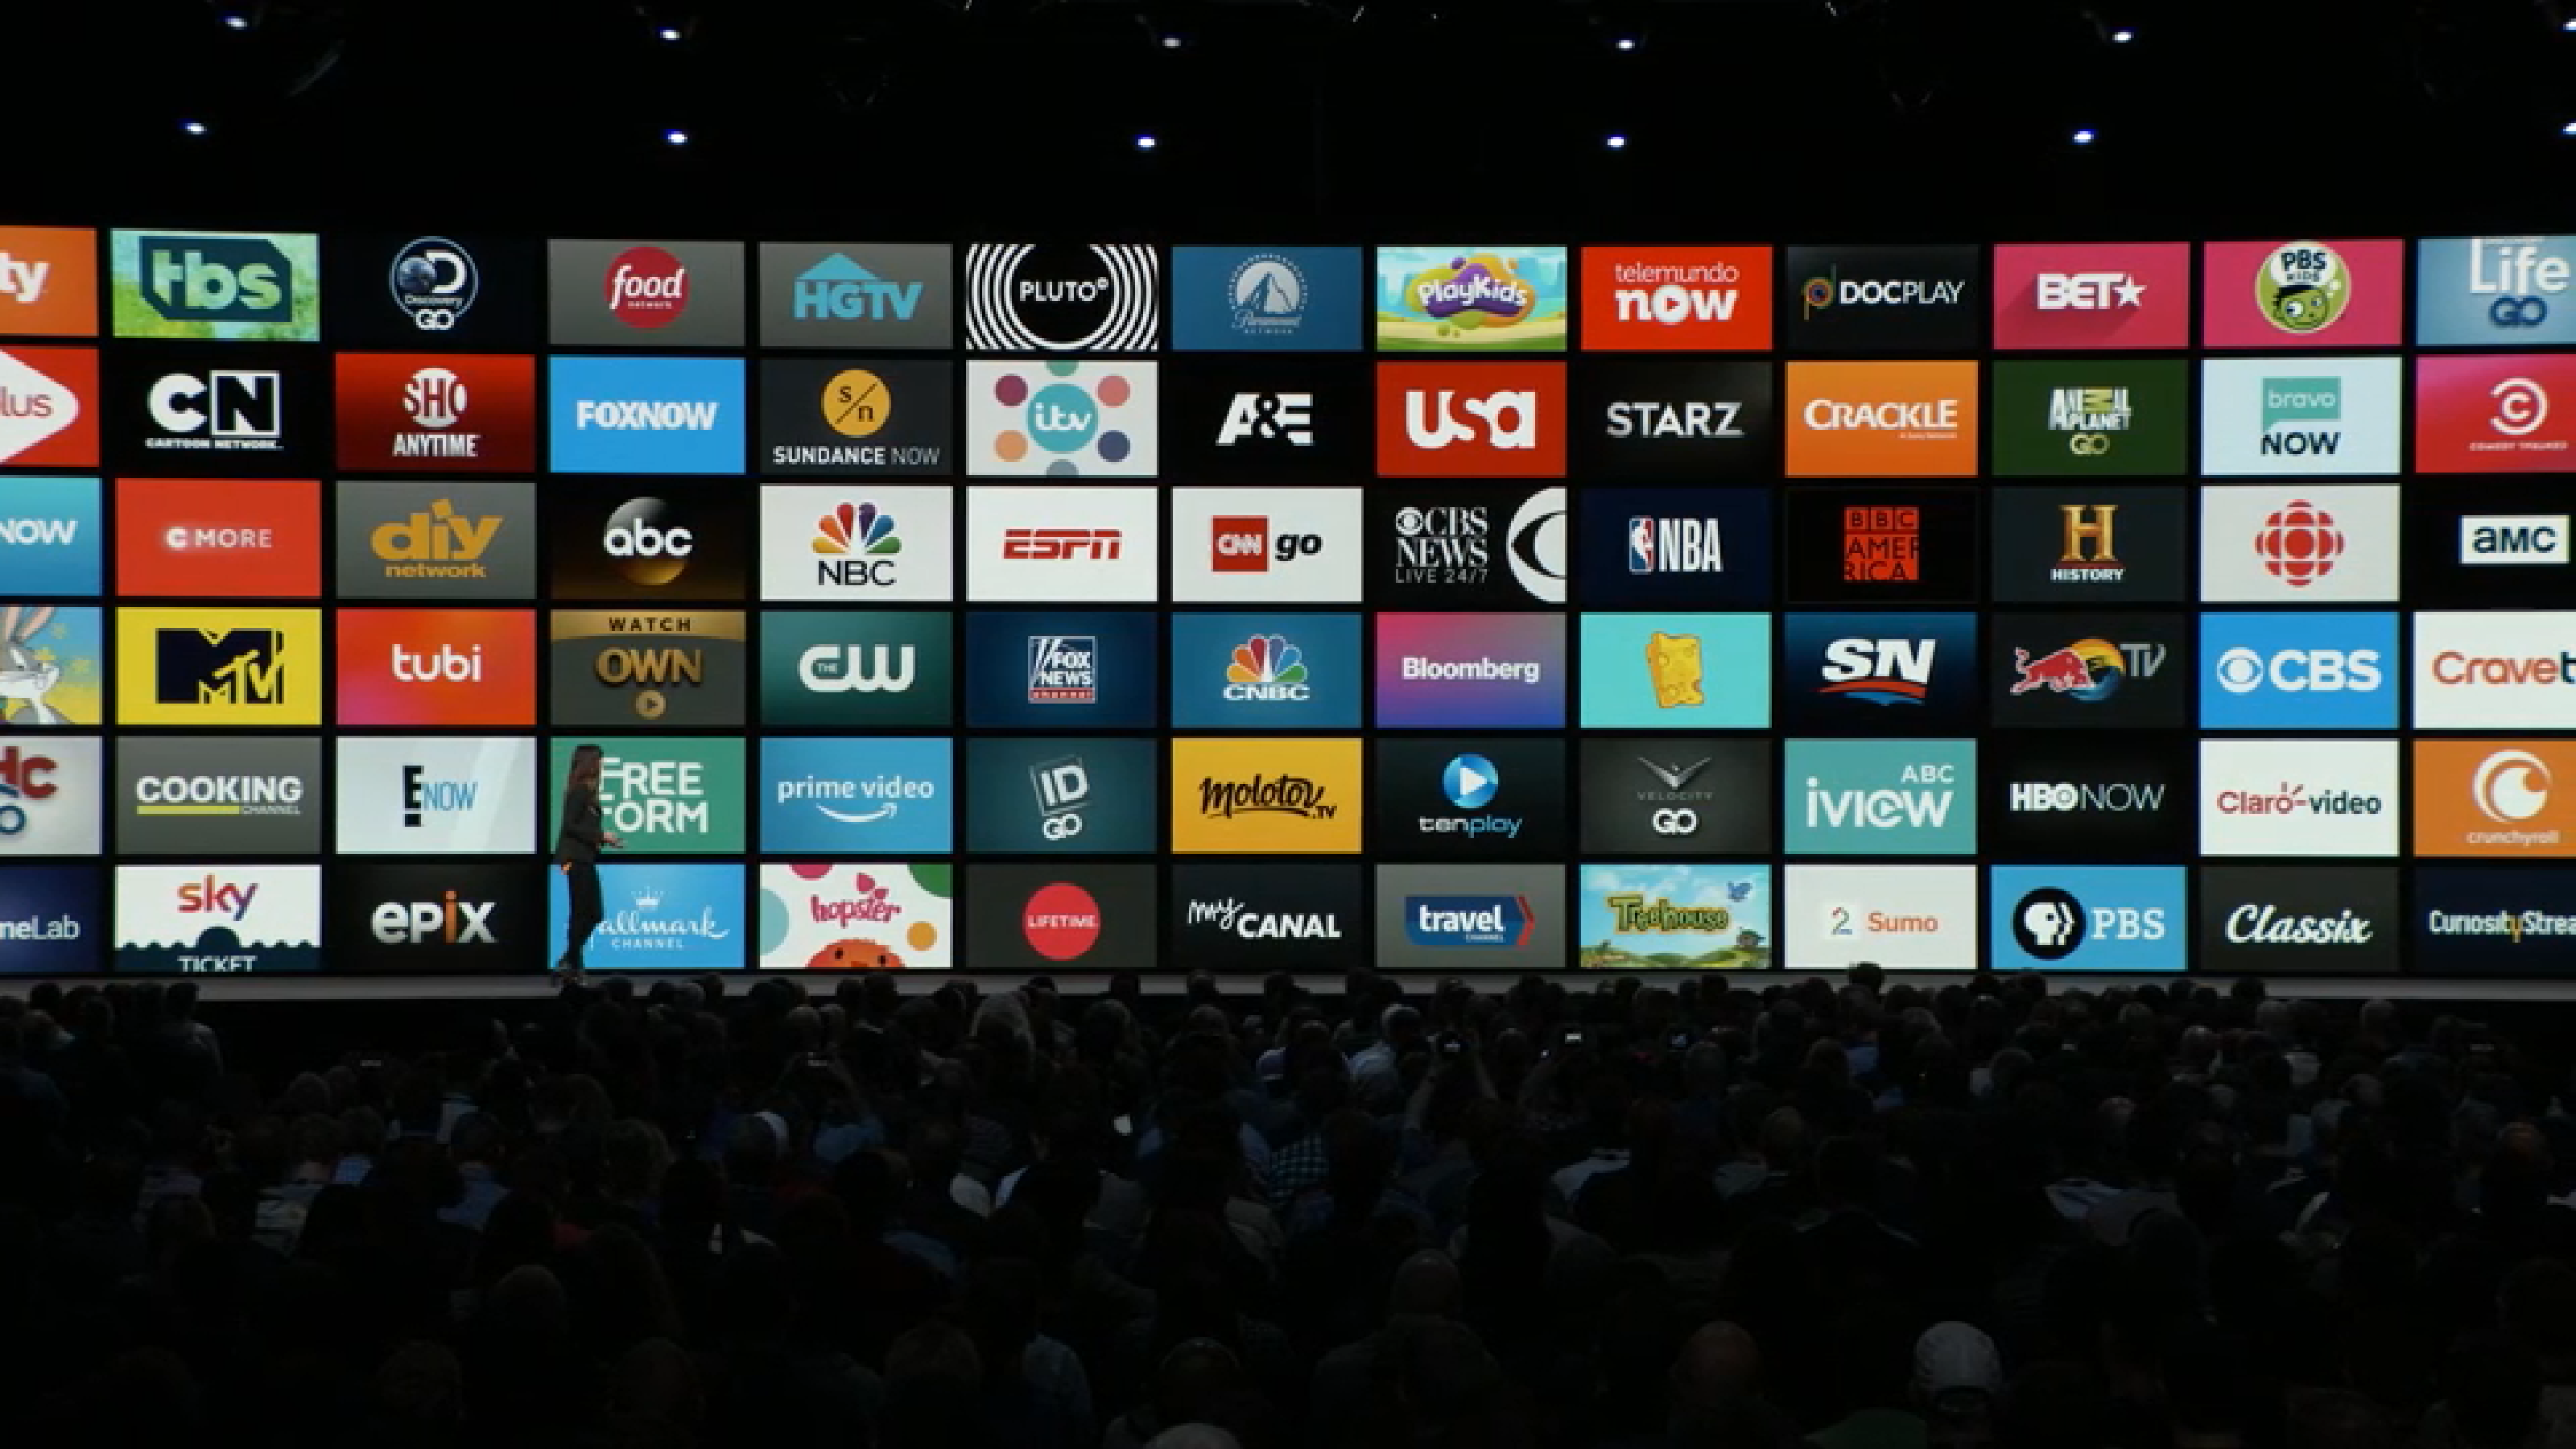 Apple's streaming service will launch before Disney's, sources say ...